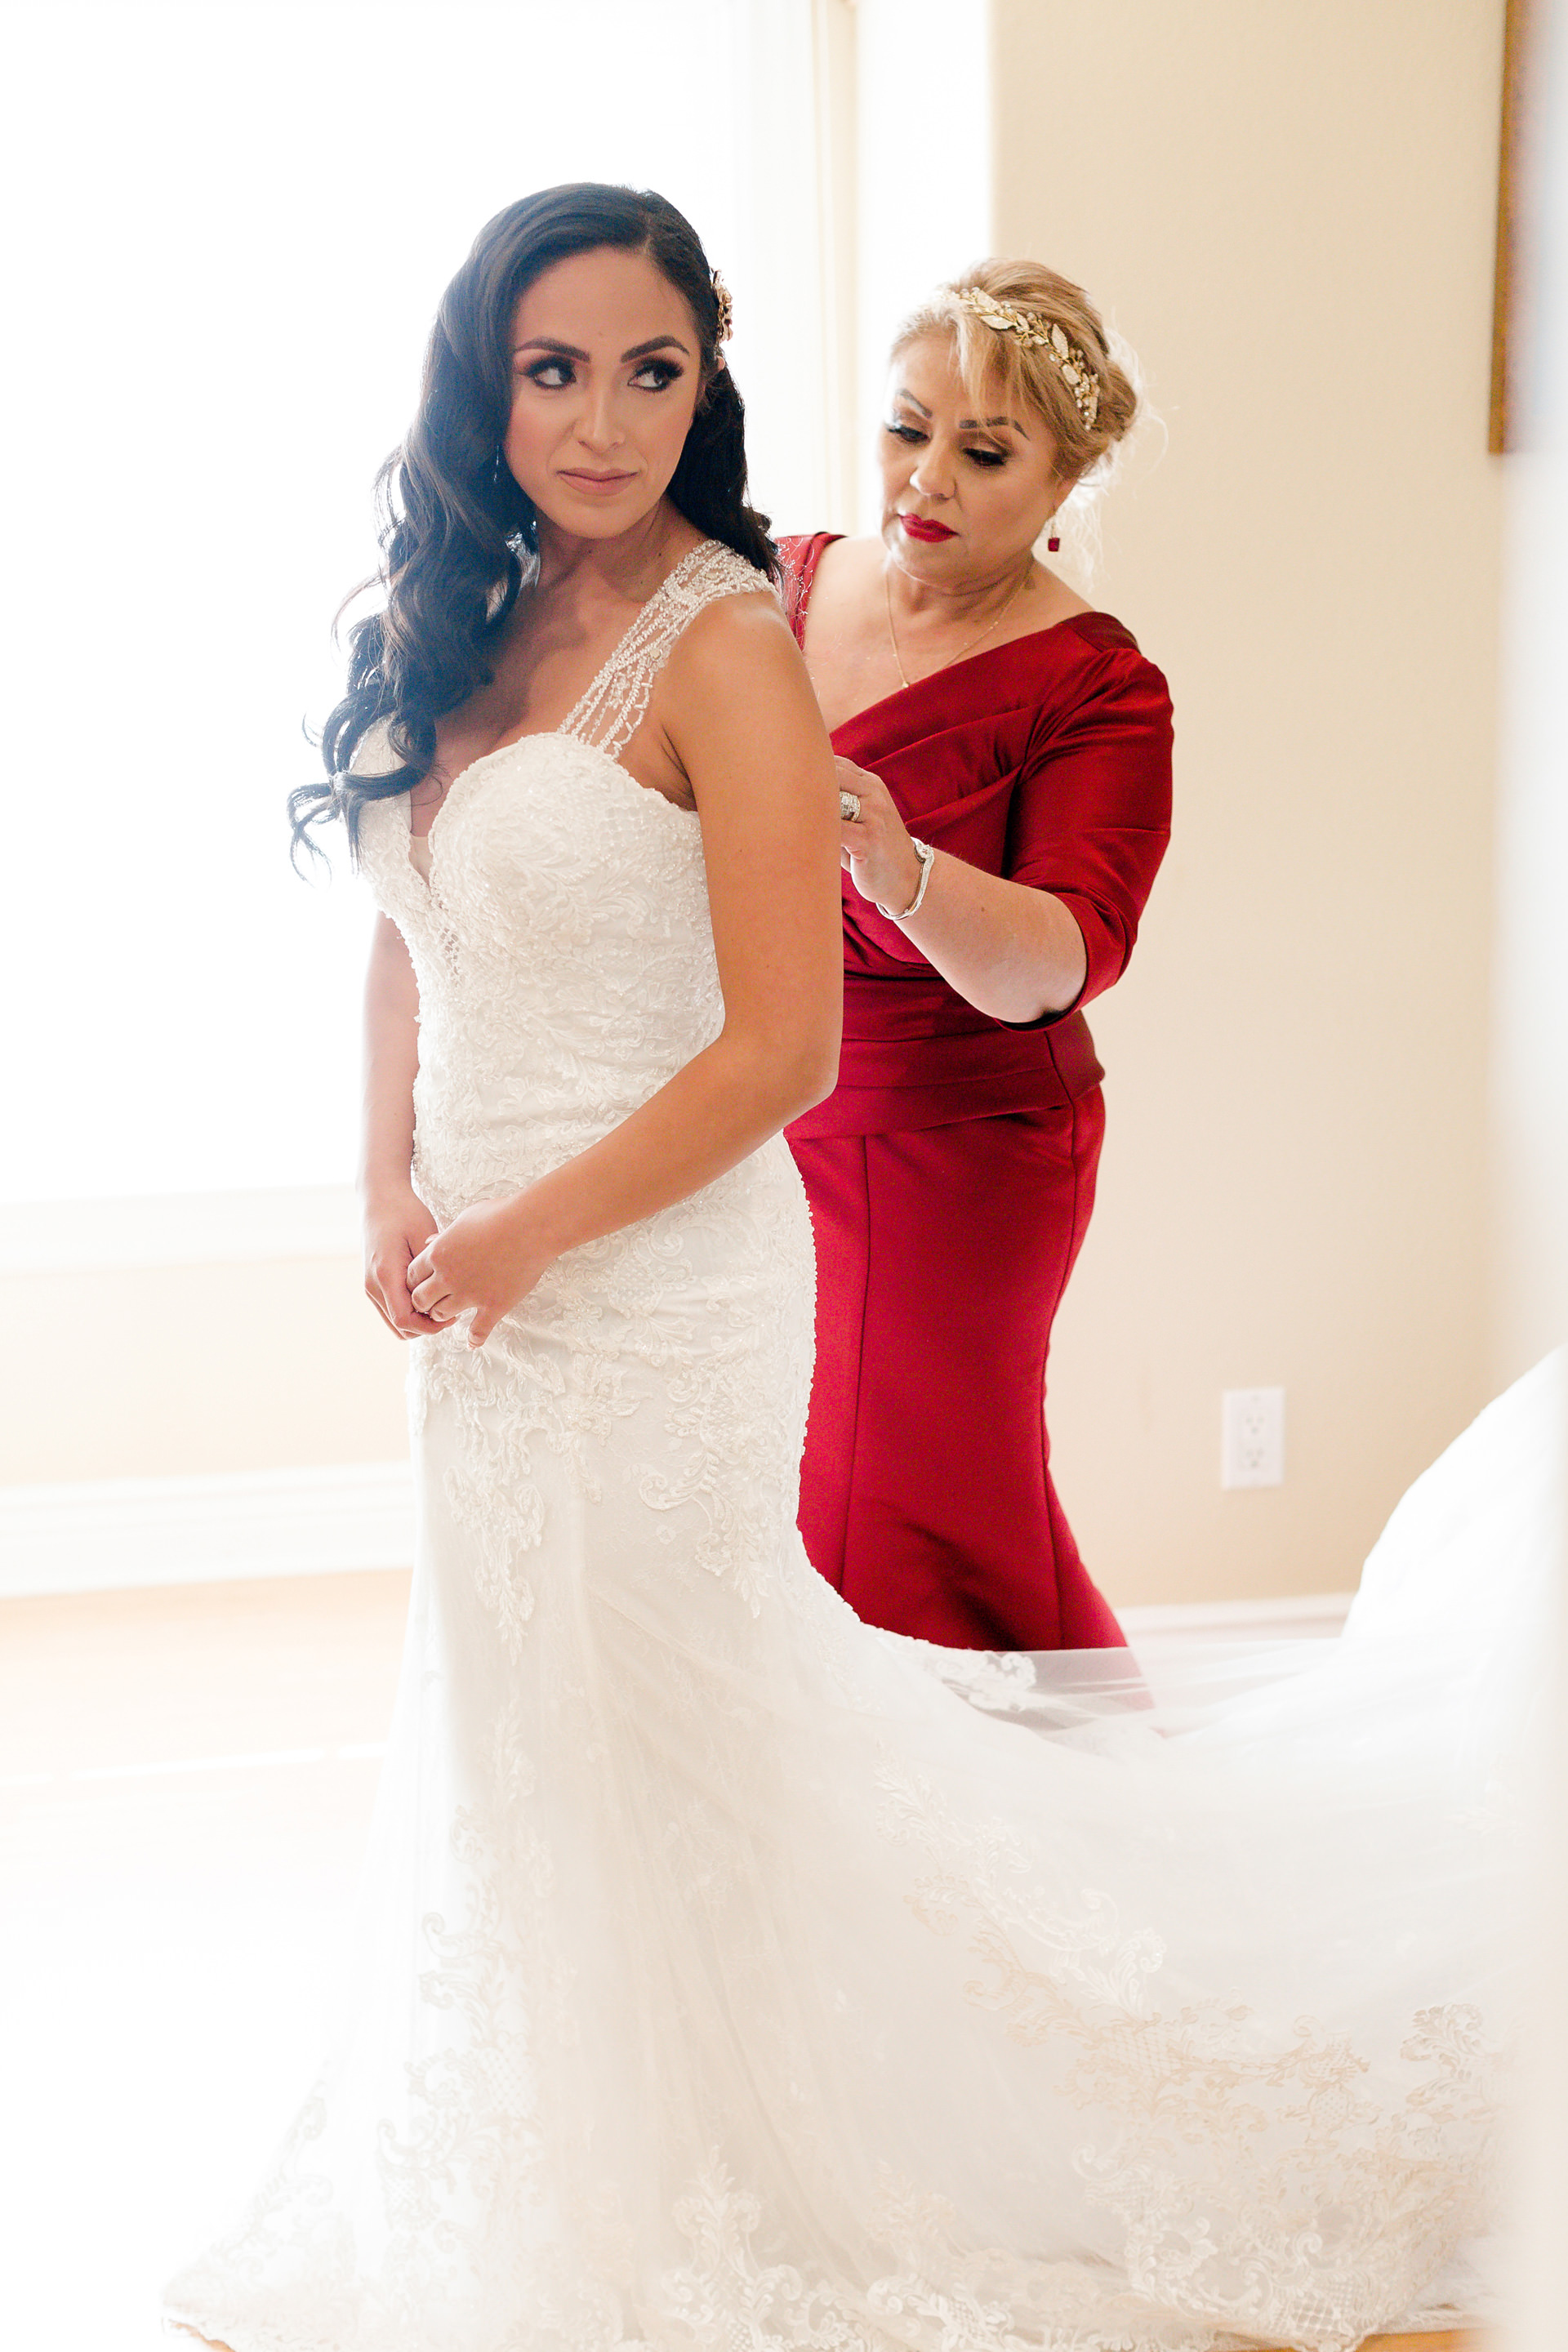 mother-of-the-bride helps her daughter dress